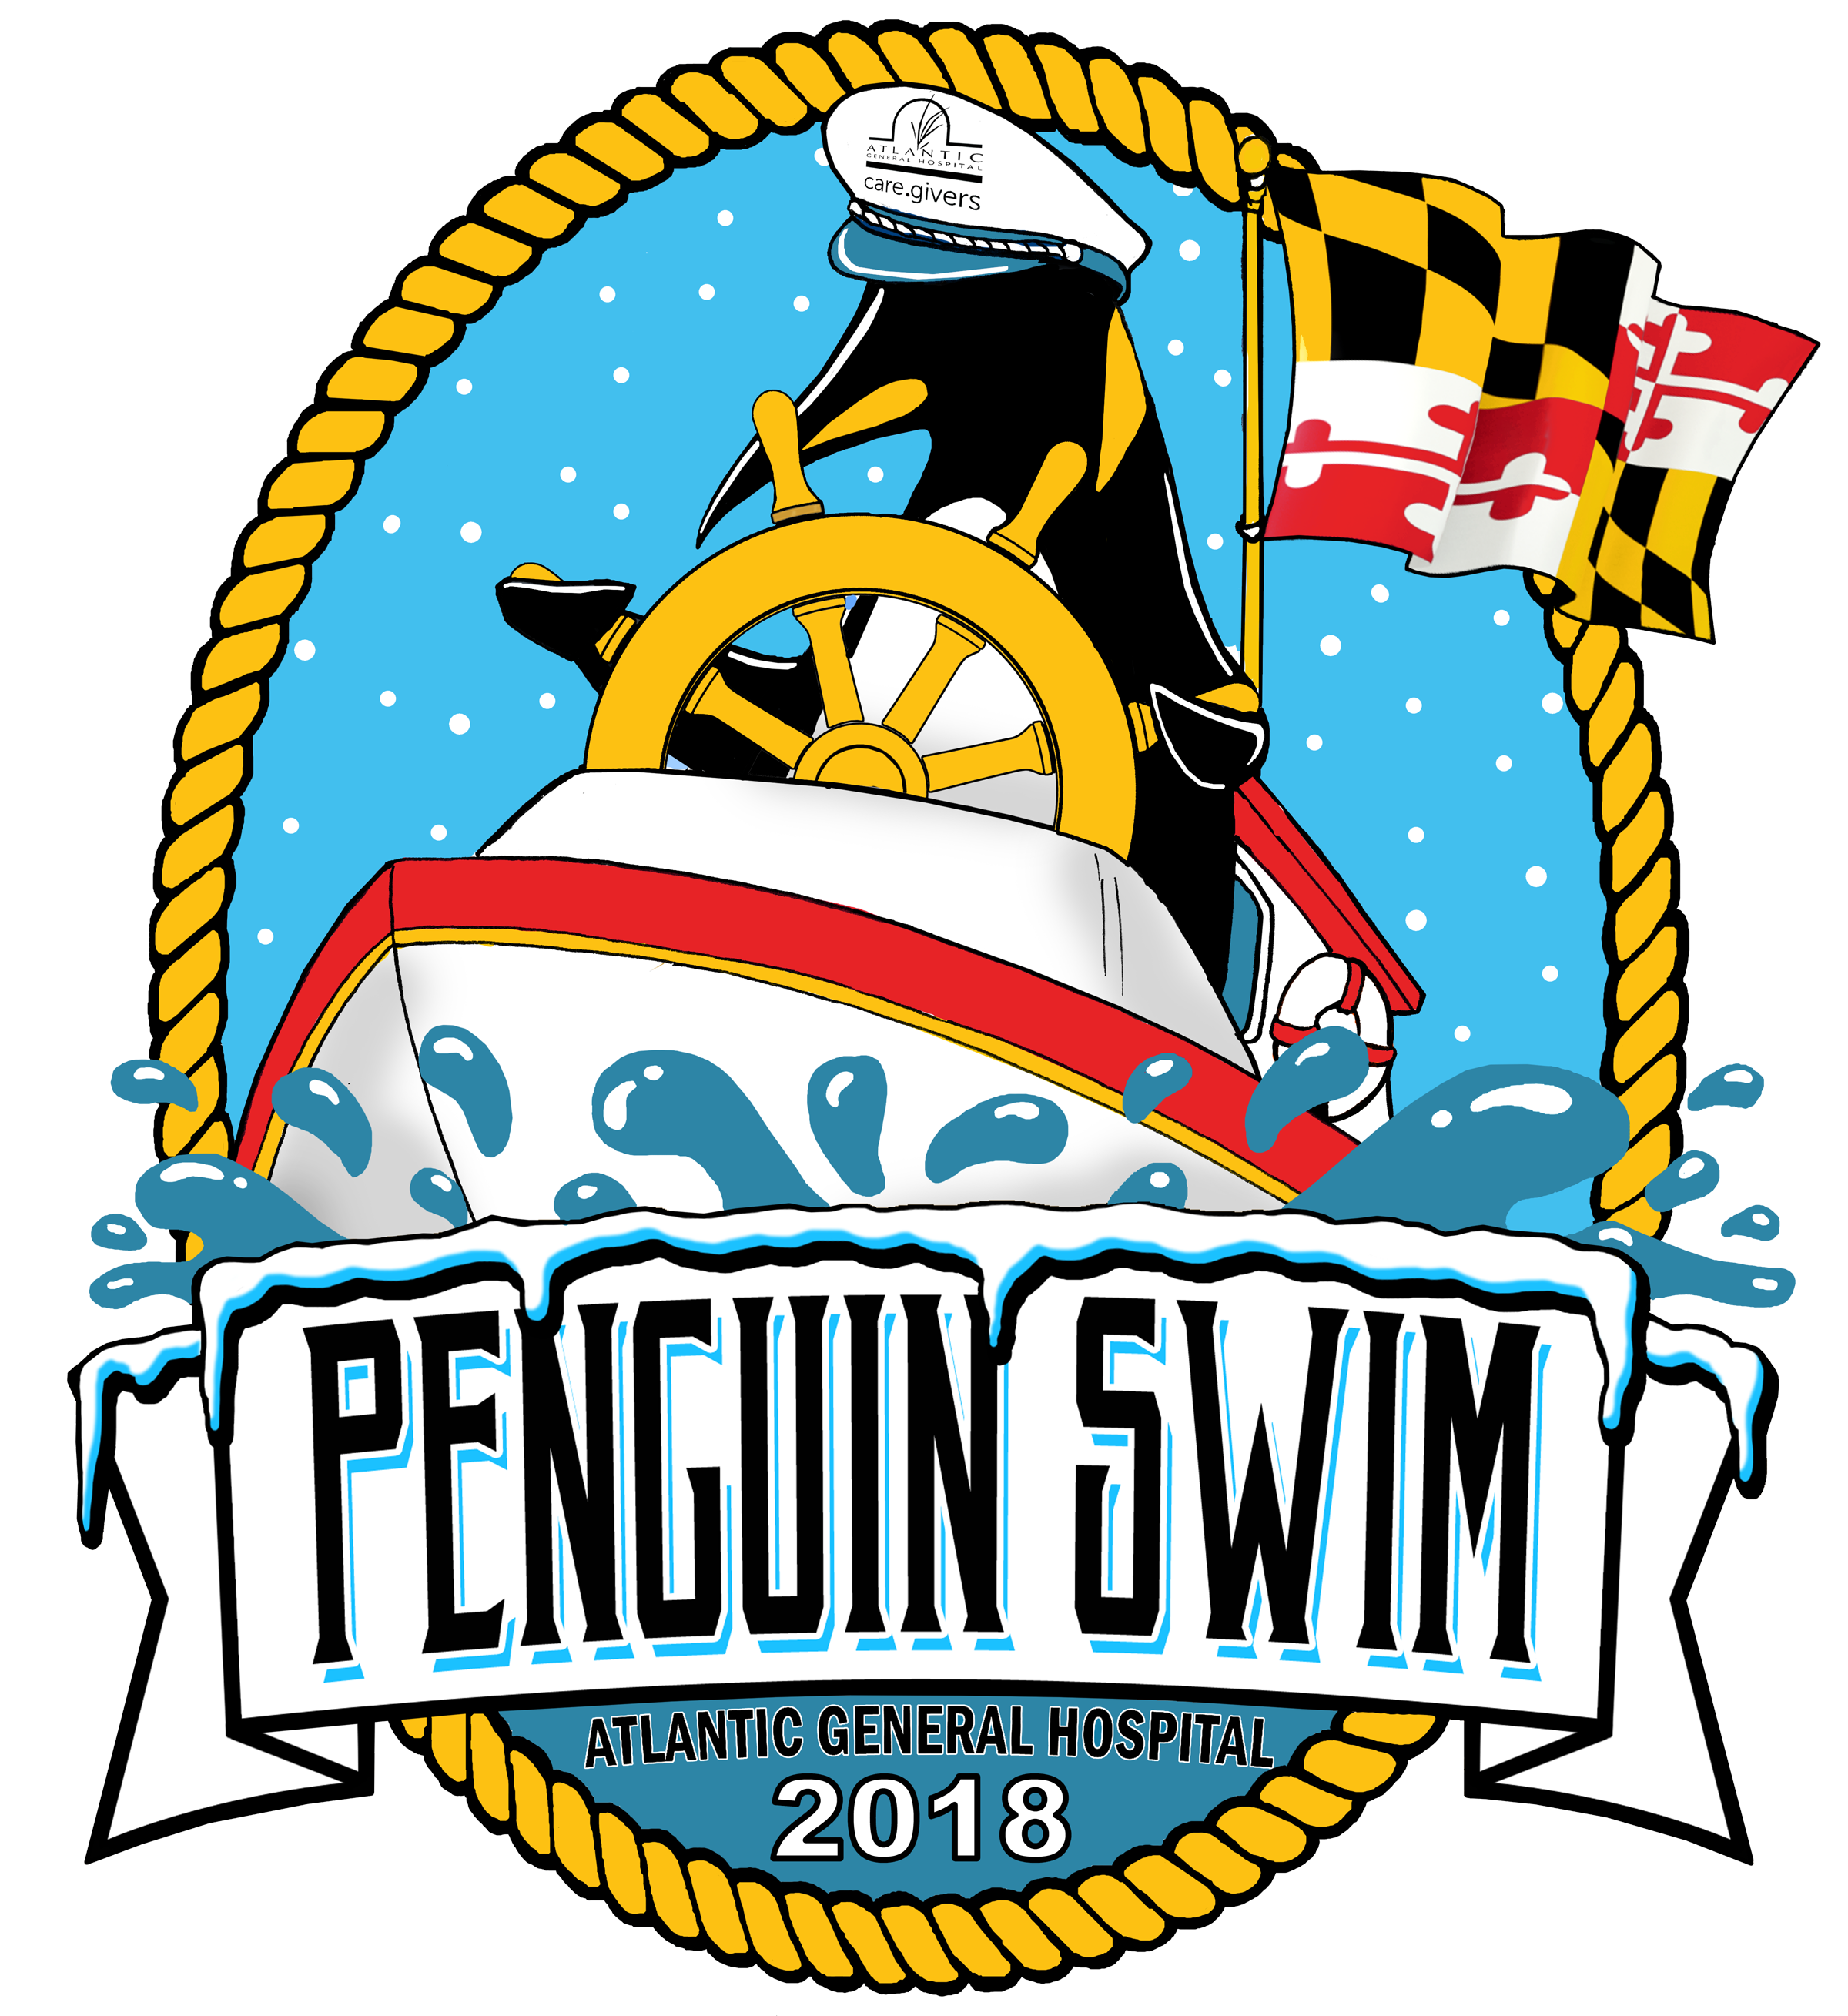 Penguin 20swim 20logo